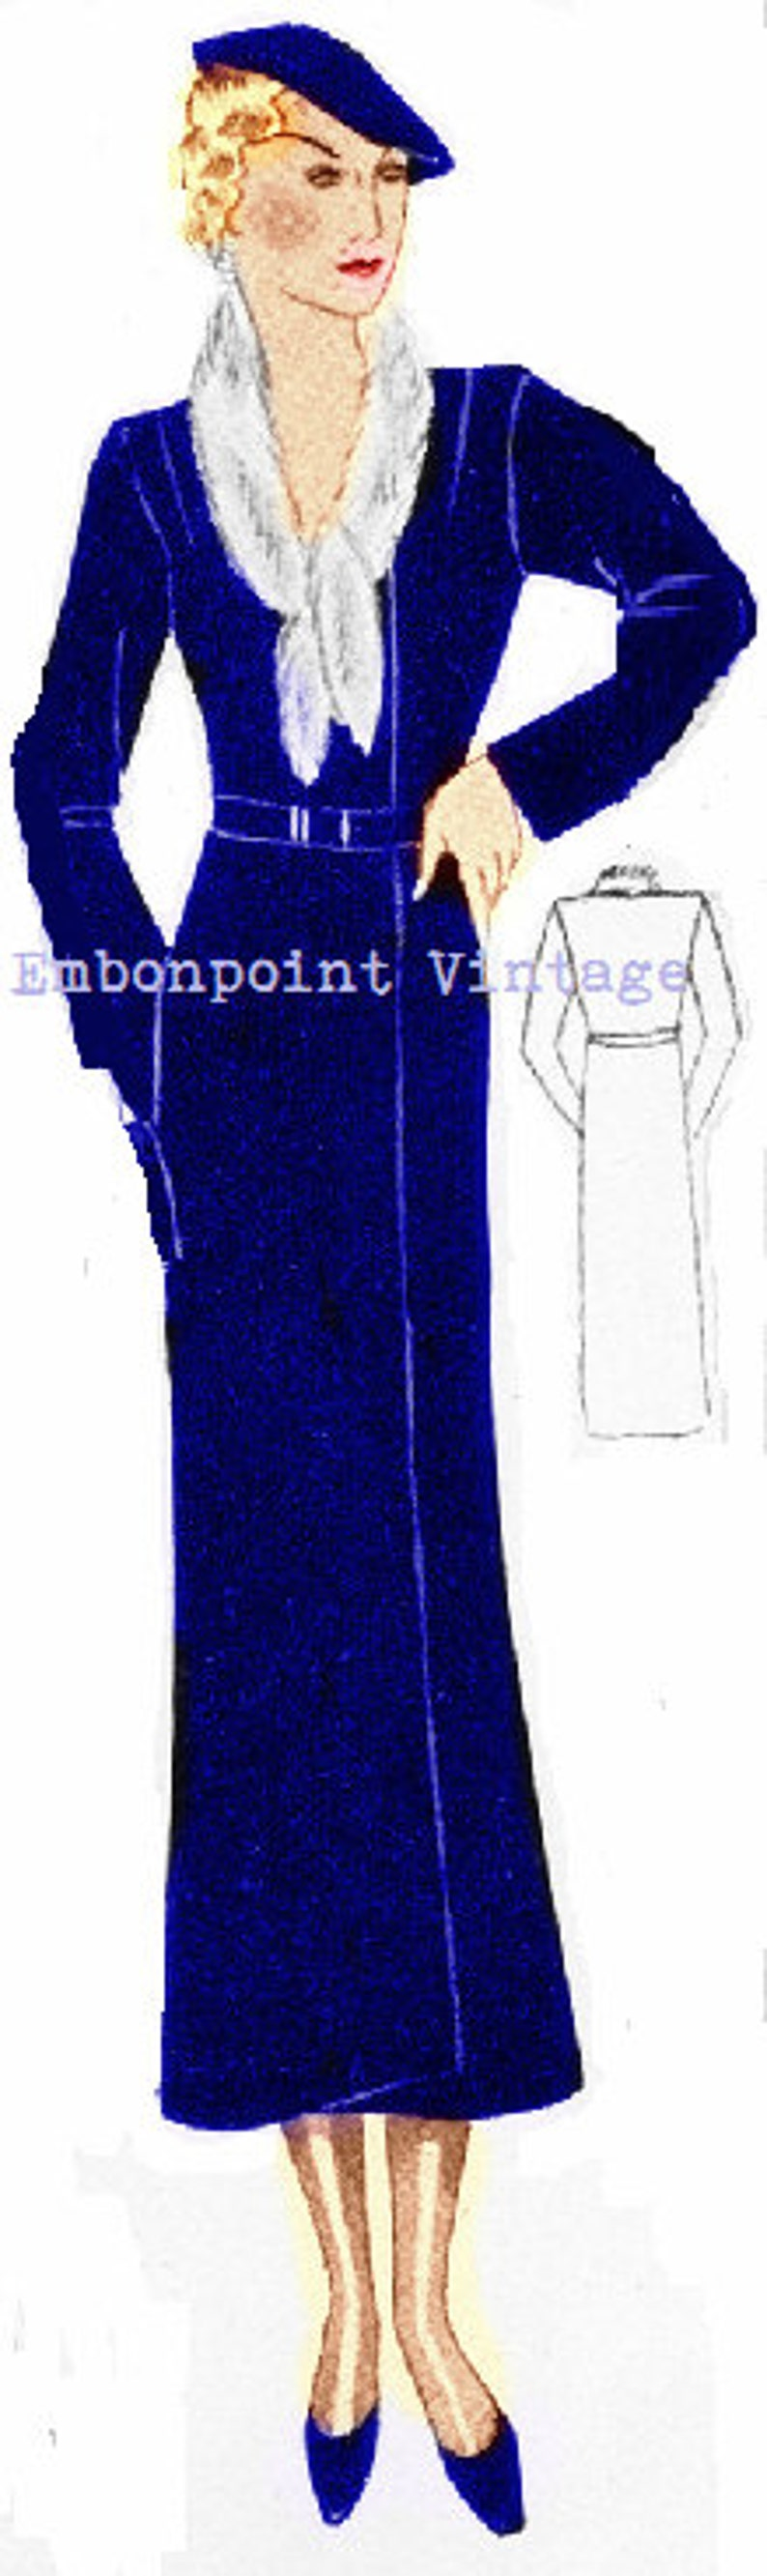 1930s Sewing Patterns- Dresses, Pants, Tops Plus Size (or any size) 1934 Vintage Coat Sewing Pattern - PDF - Pattern No 69 Olive 1930s 30s Instant Download $9.34 AT vintagedancer.com